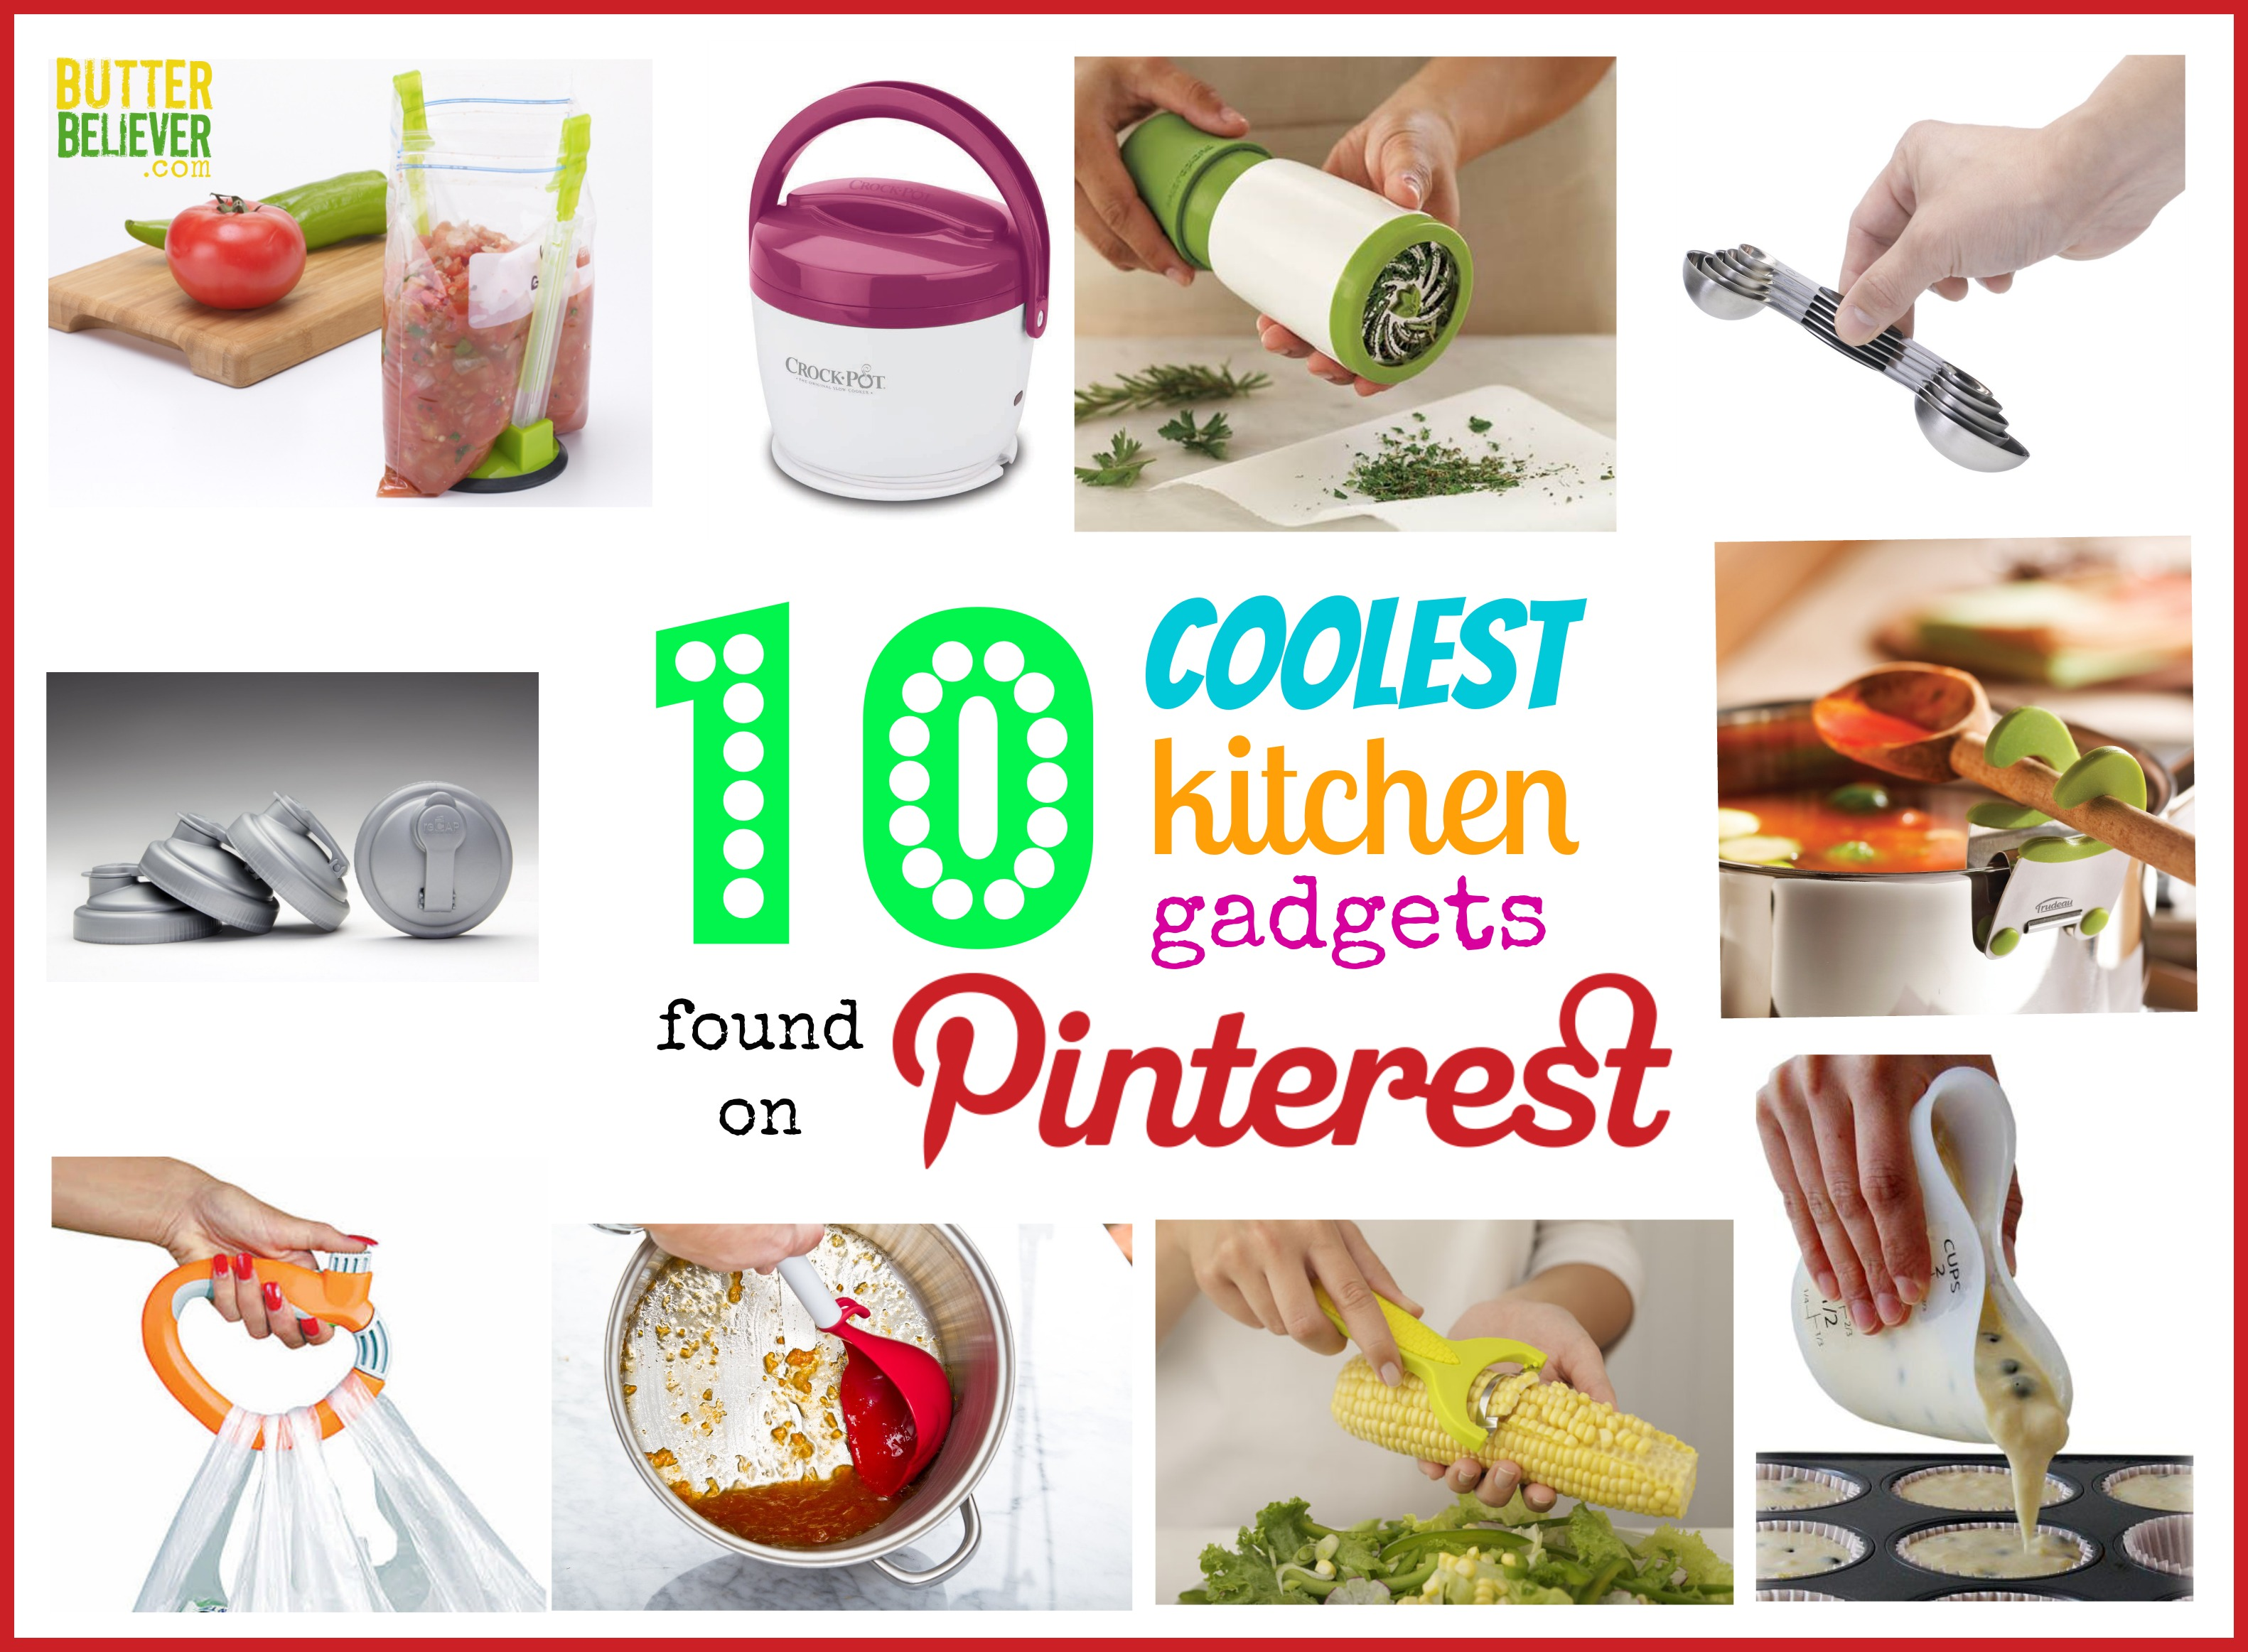 the latest kitchen gadgets outdoor kit 10 coolest found on pinterest butter